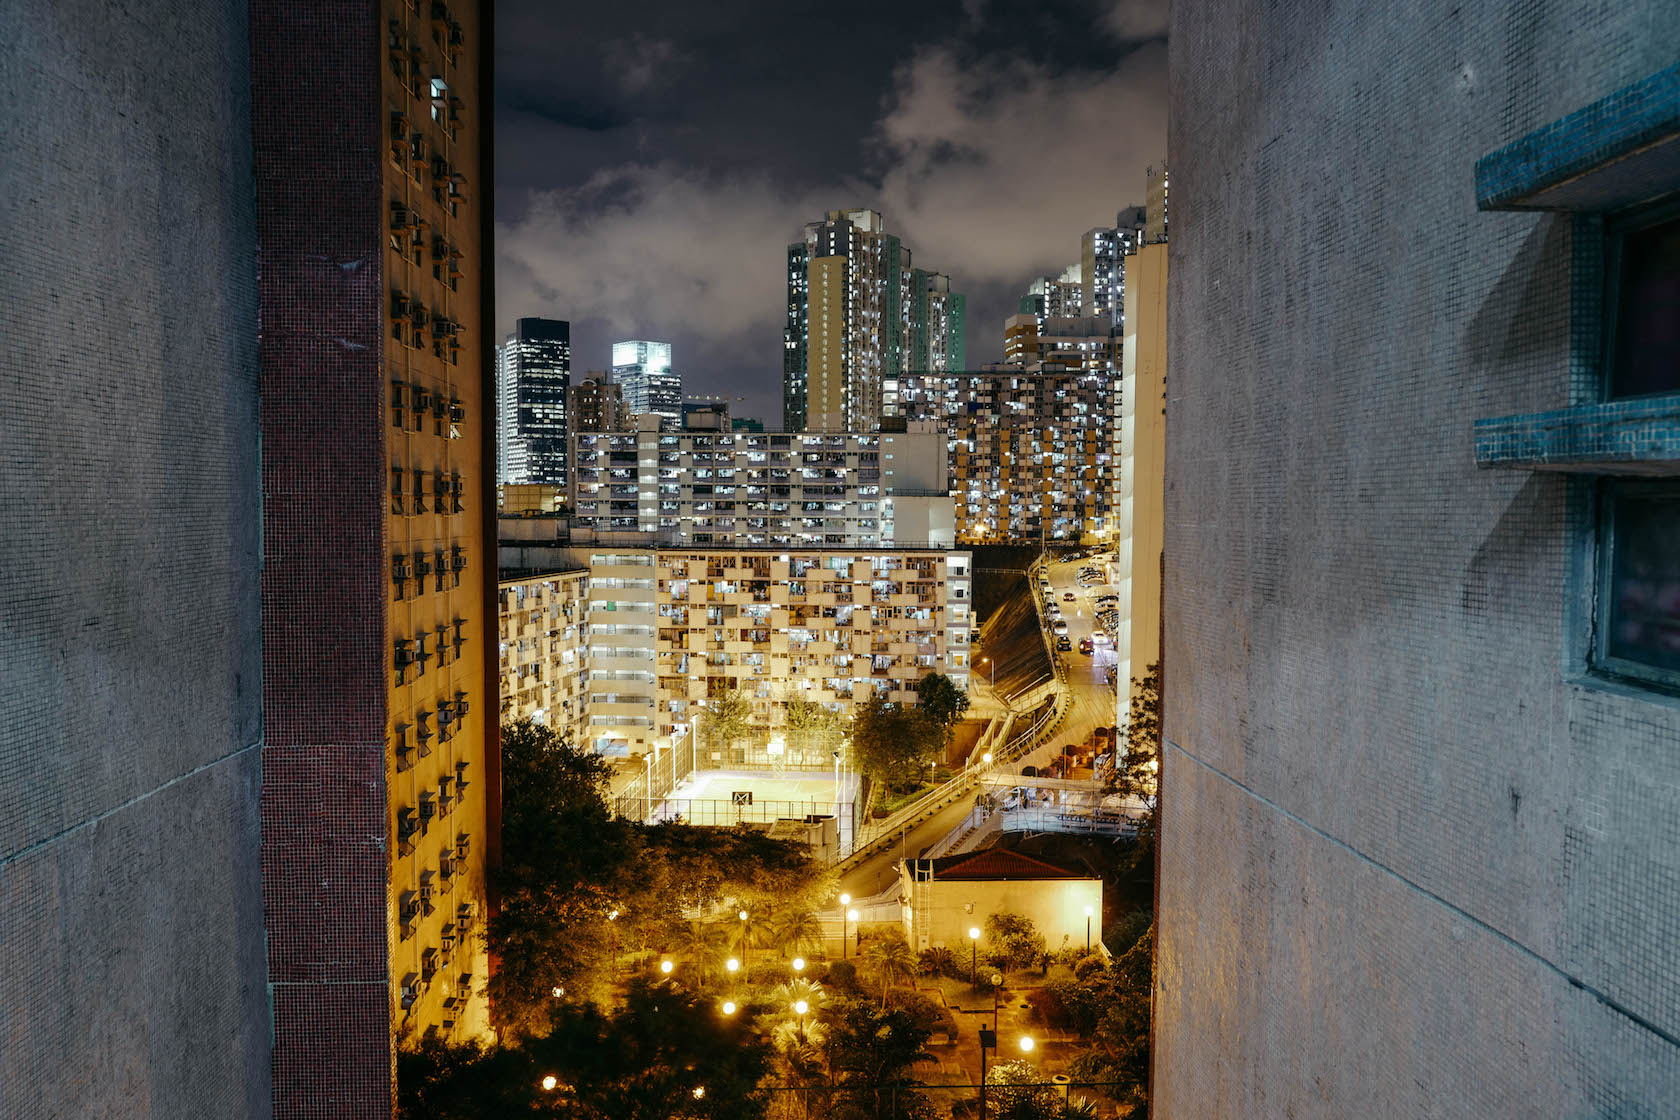 Hong Kong Lights Cityscape at night architecture